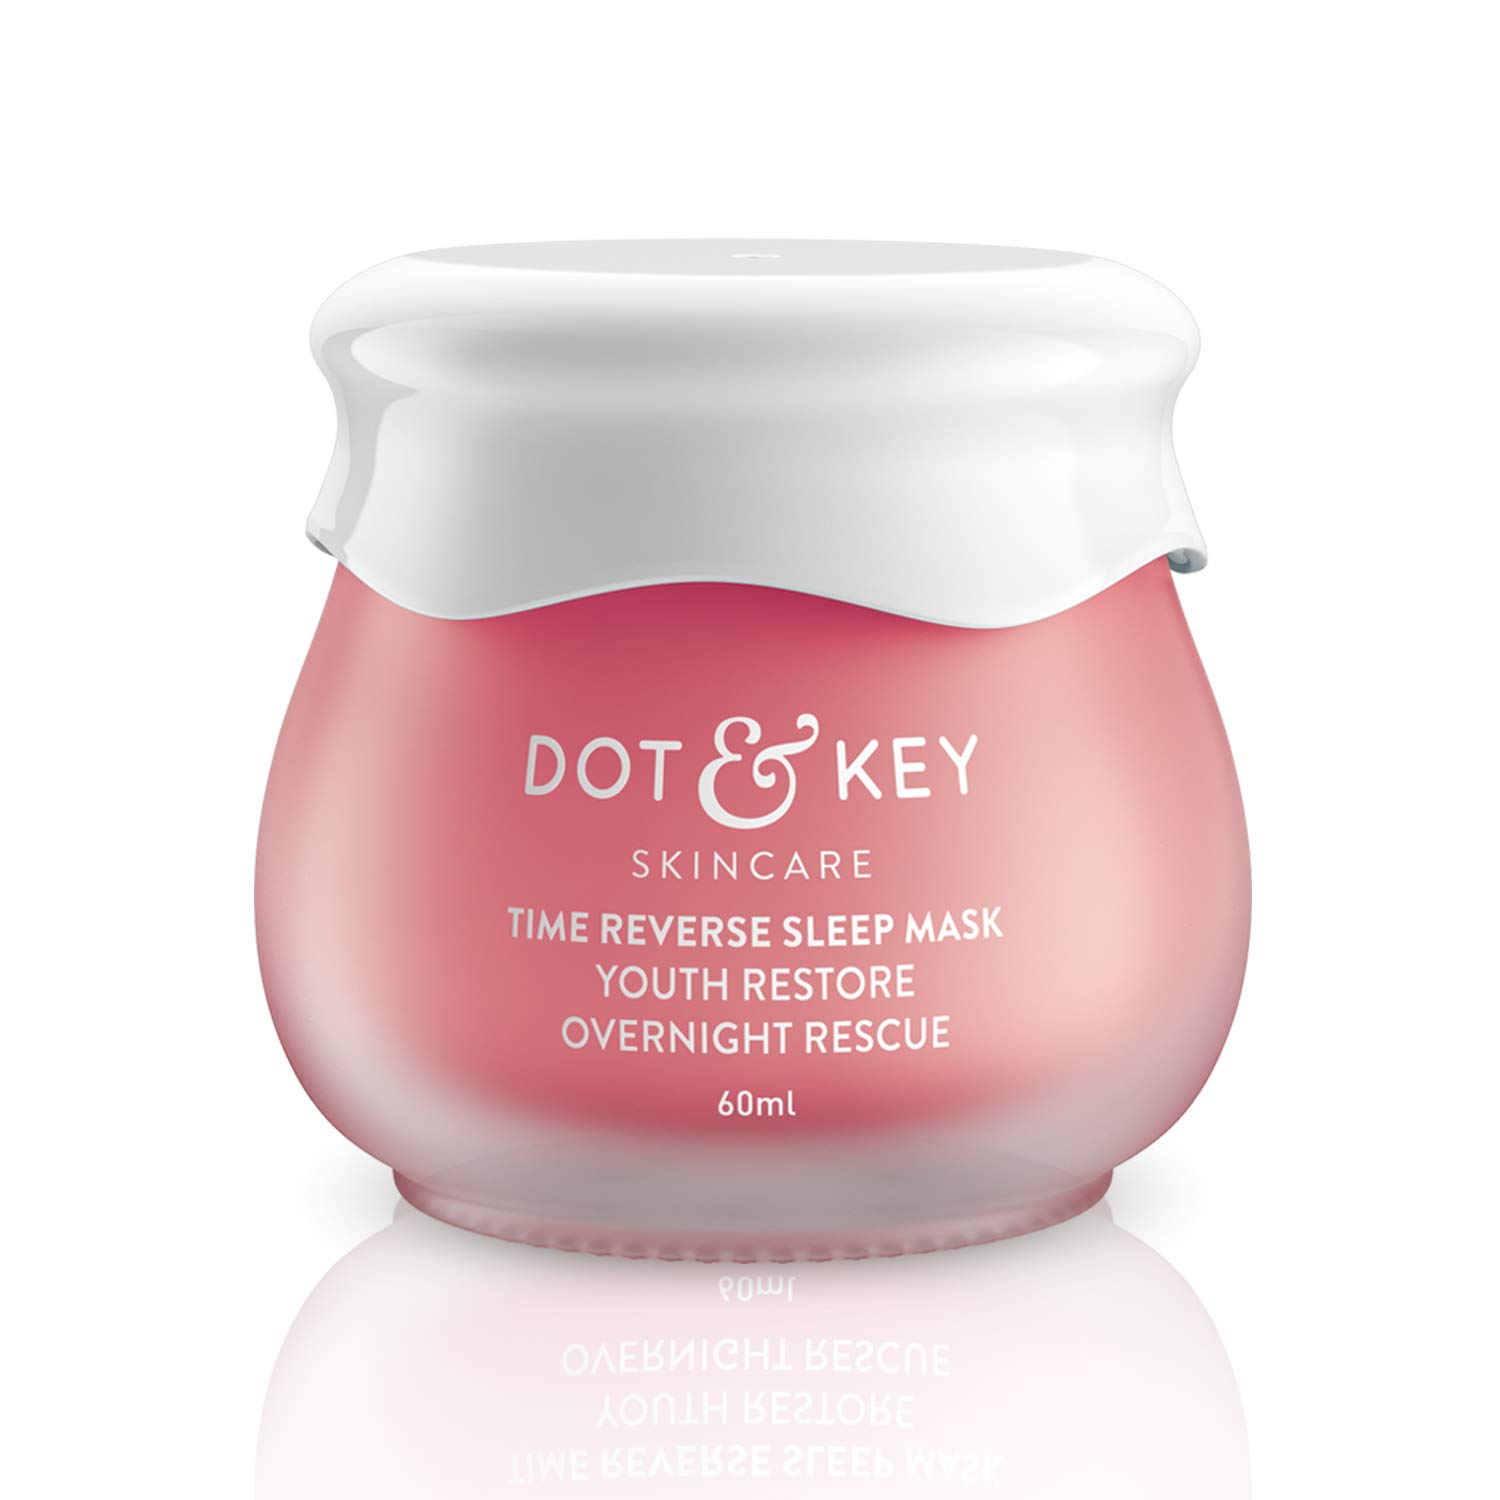 Dot & Key Time Reverse Sleep Mask, Youth Restore Overnight Rescue Mask, Anti Ageing Night Gel 60ml, with Retinol and…